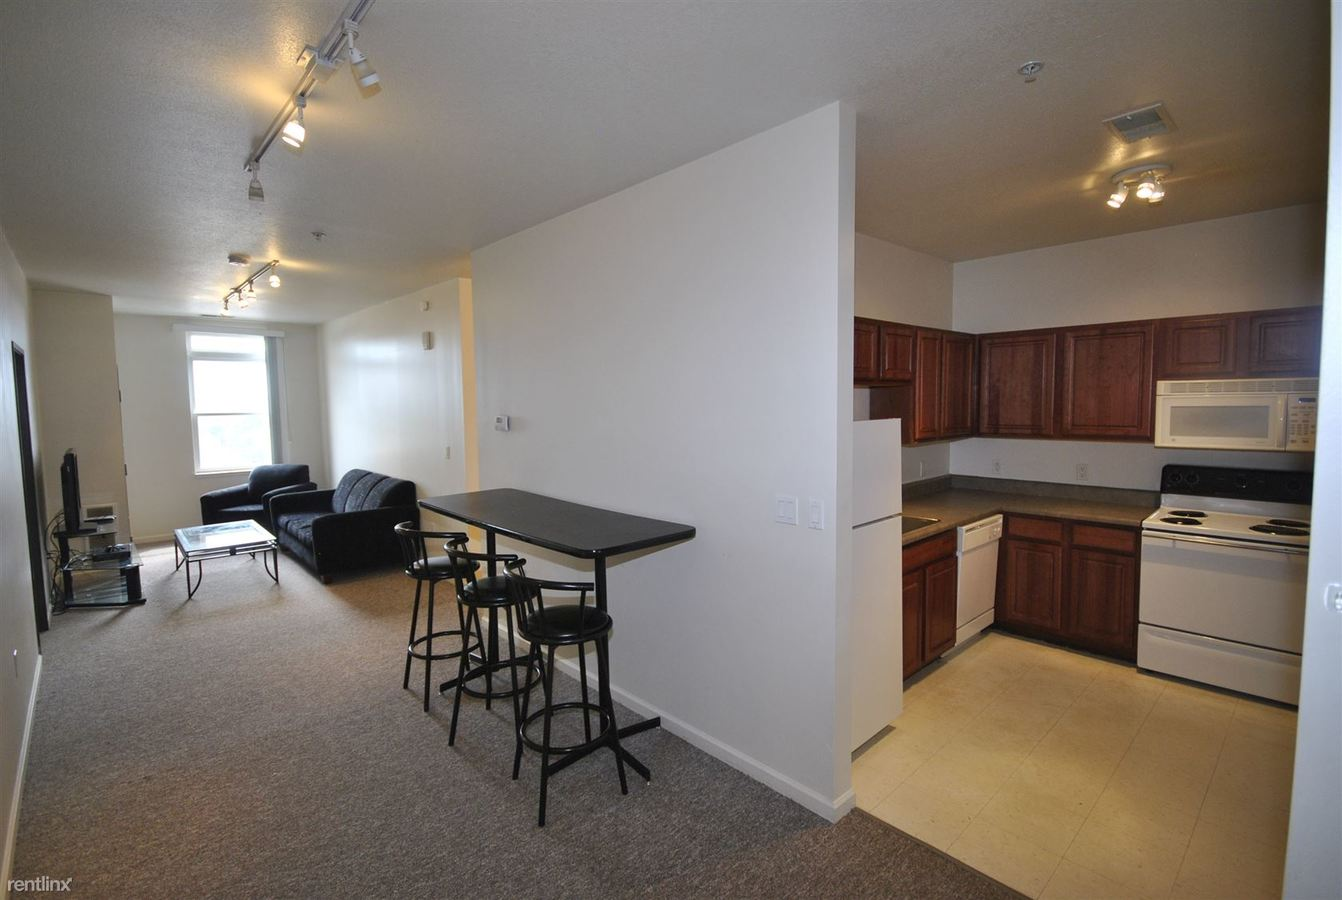 2 Bedrooms 1 Bathroom Apartment for rent at Corner House Apartments in Ann Arbor, MI